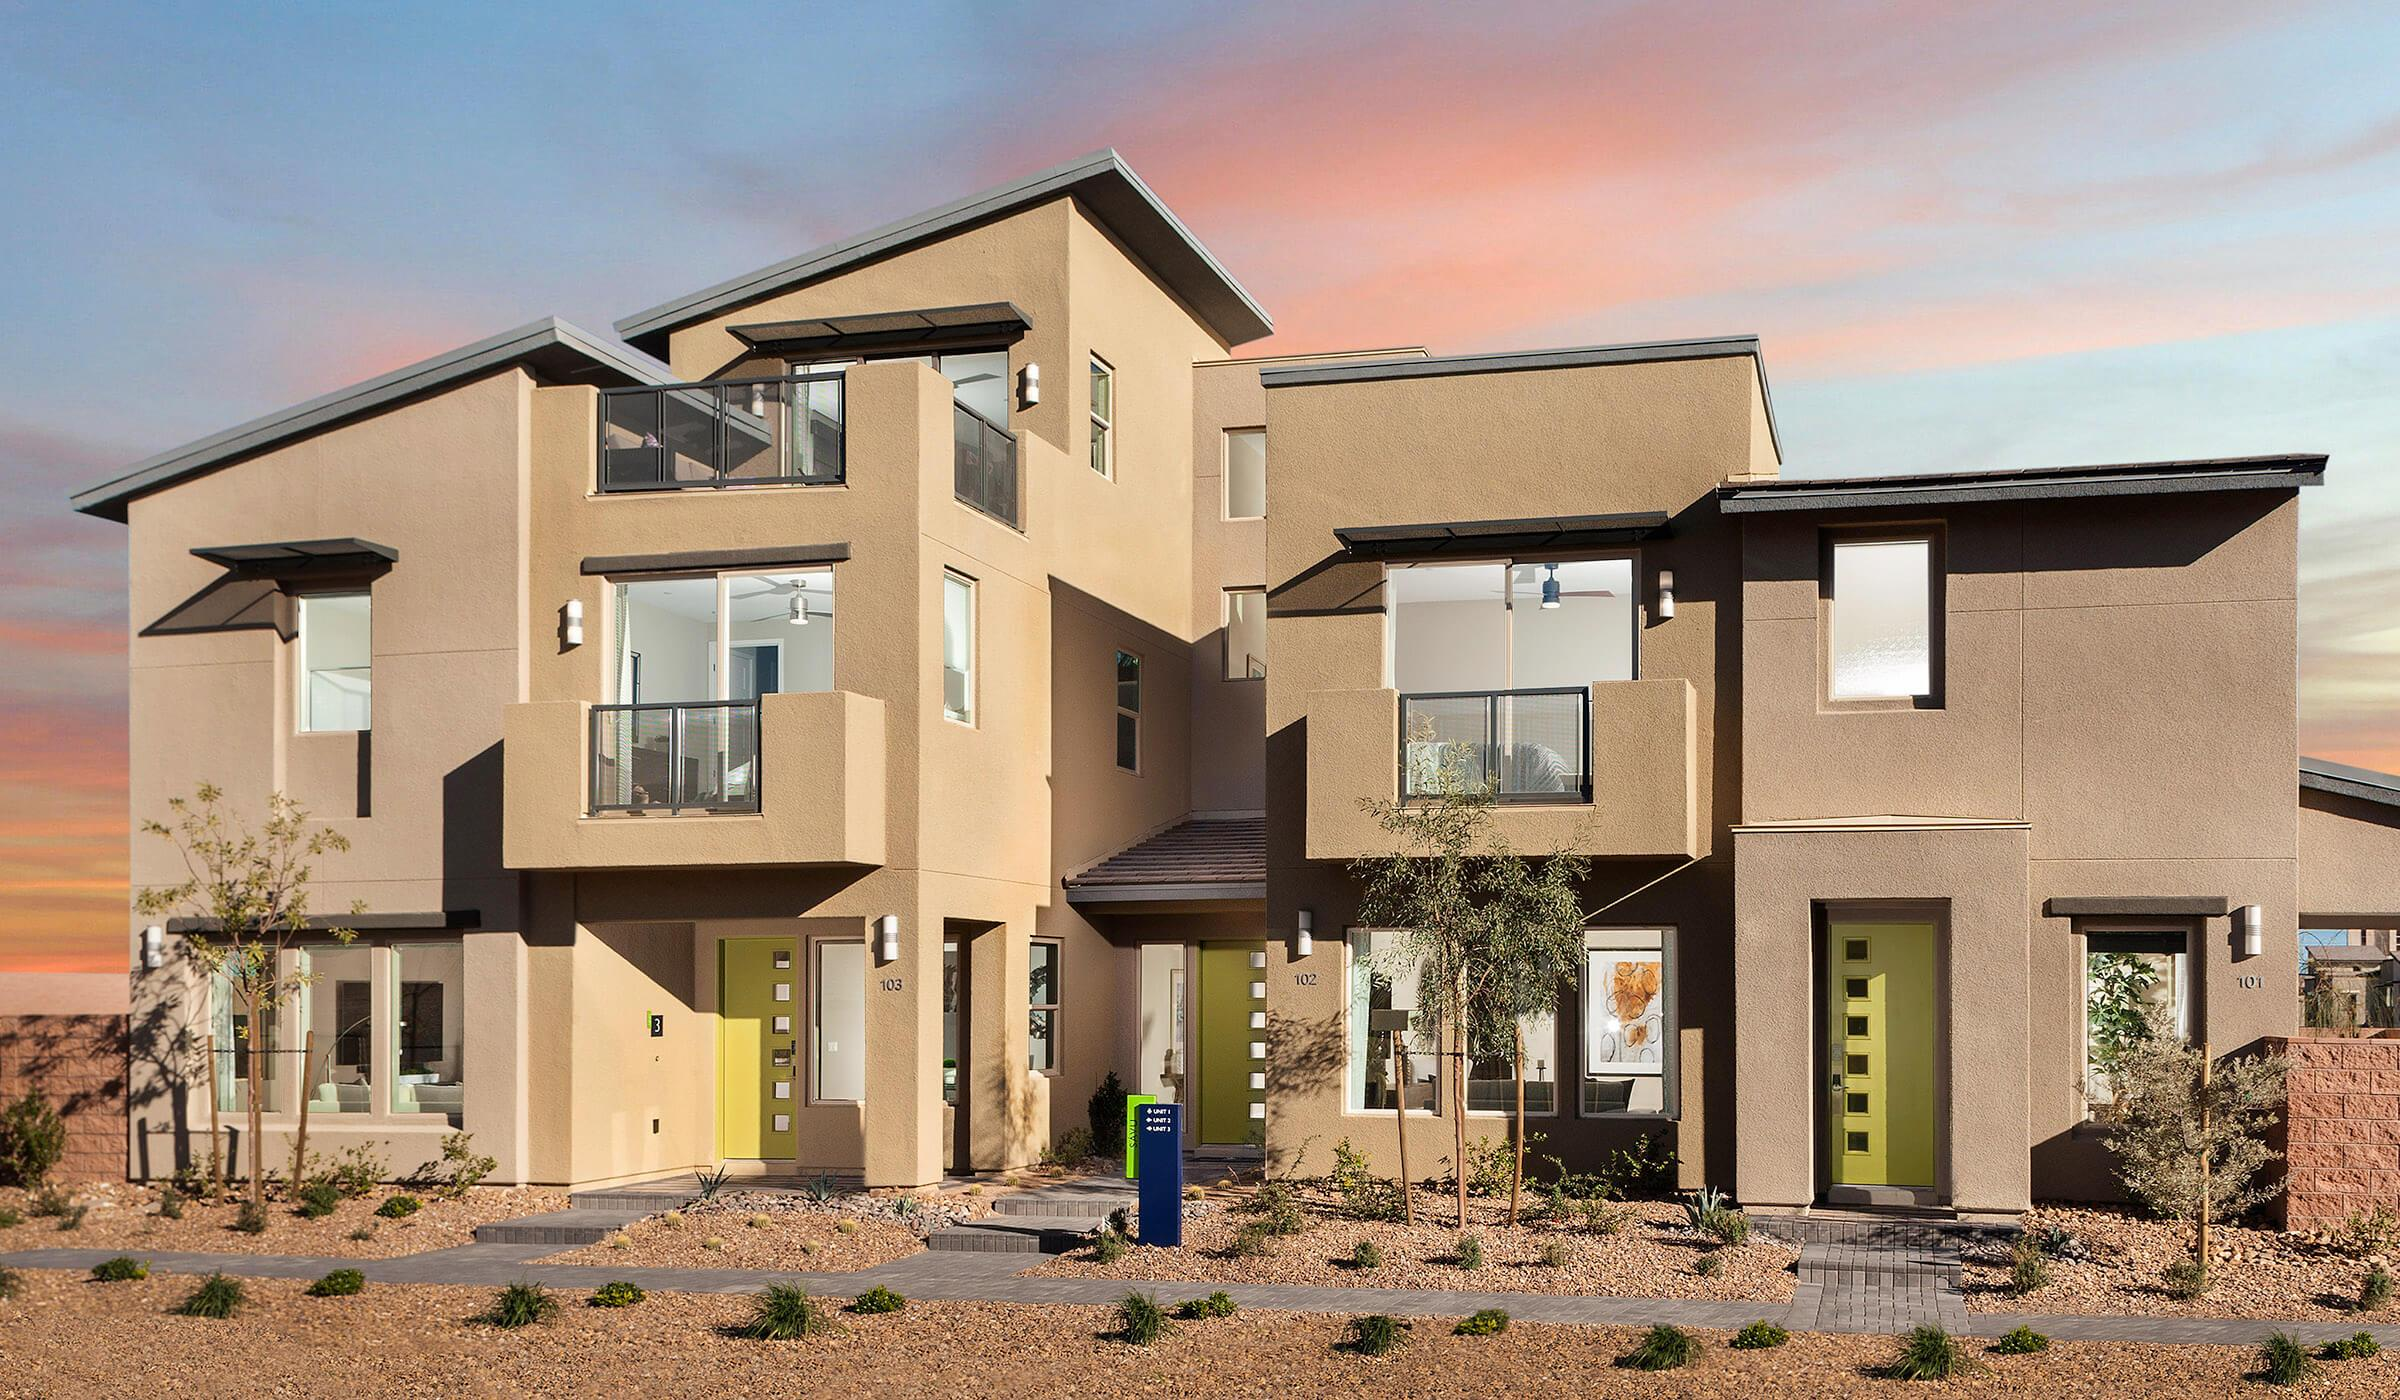 New home construction plans in las vegas nv view for Las vegas home source